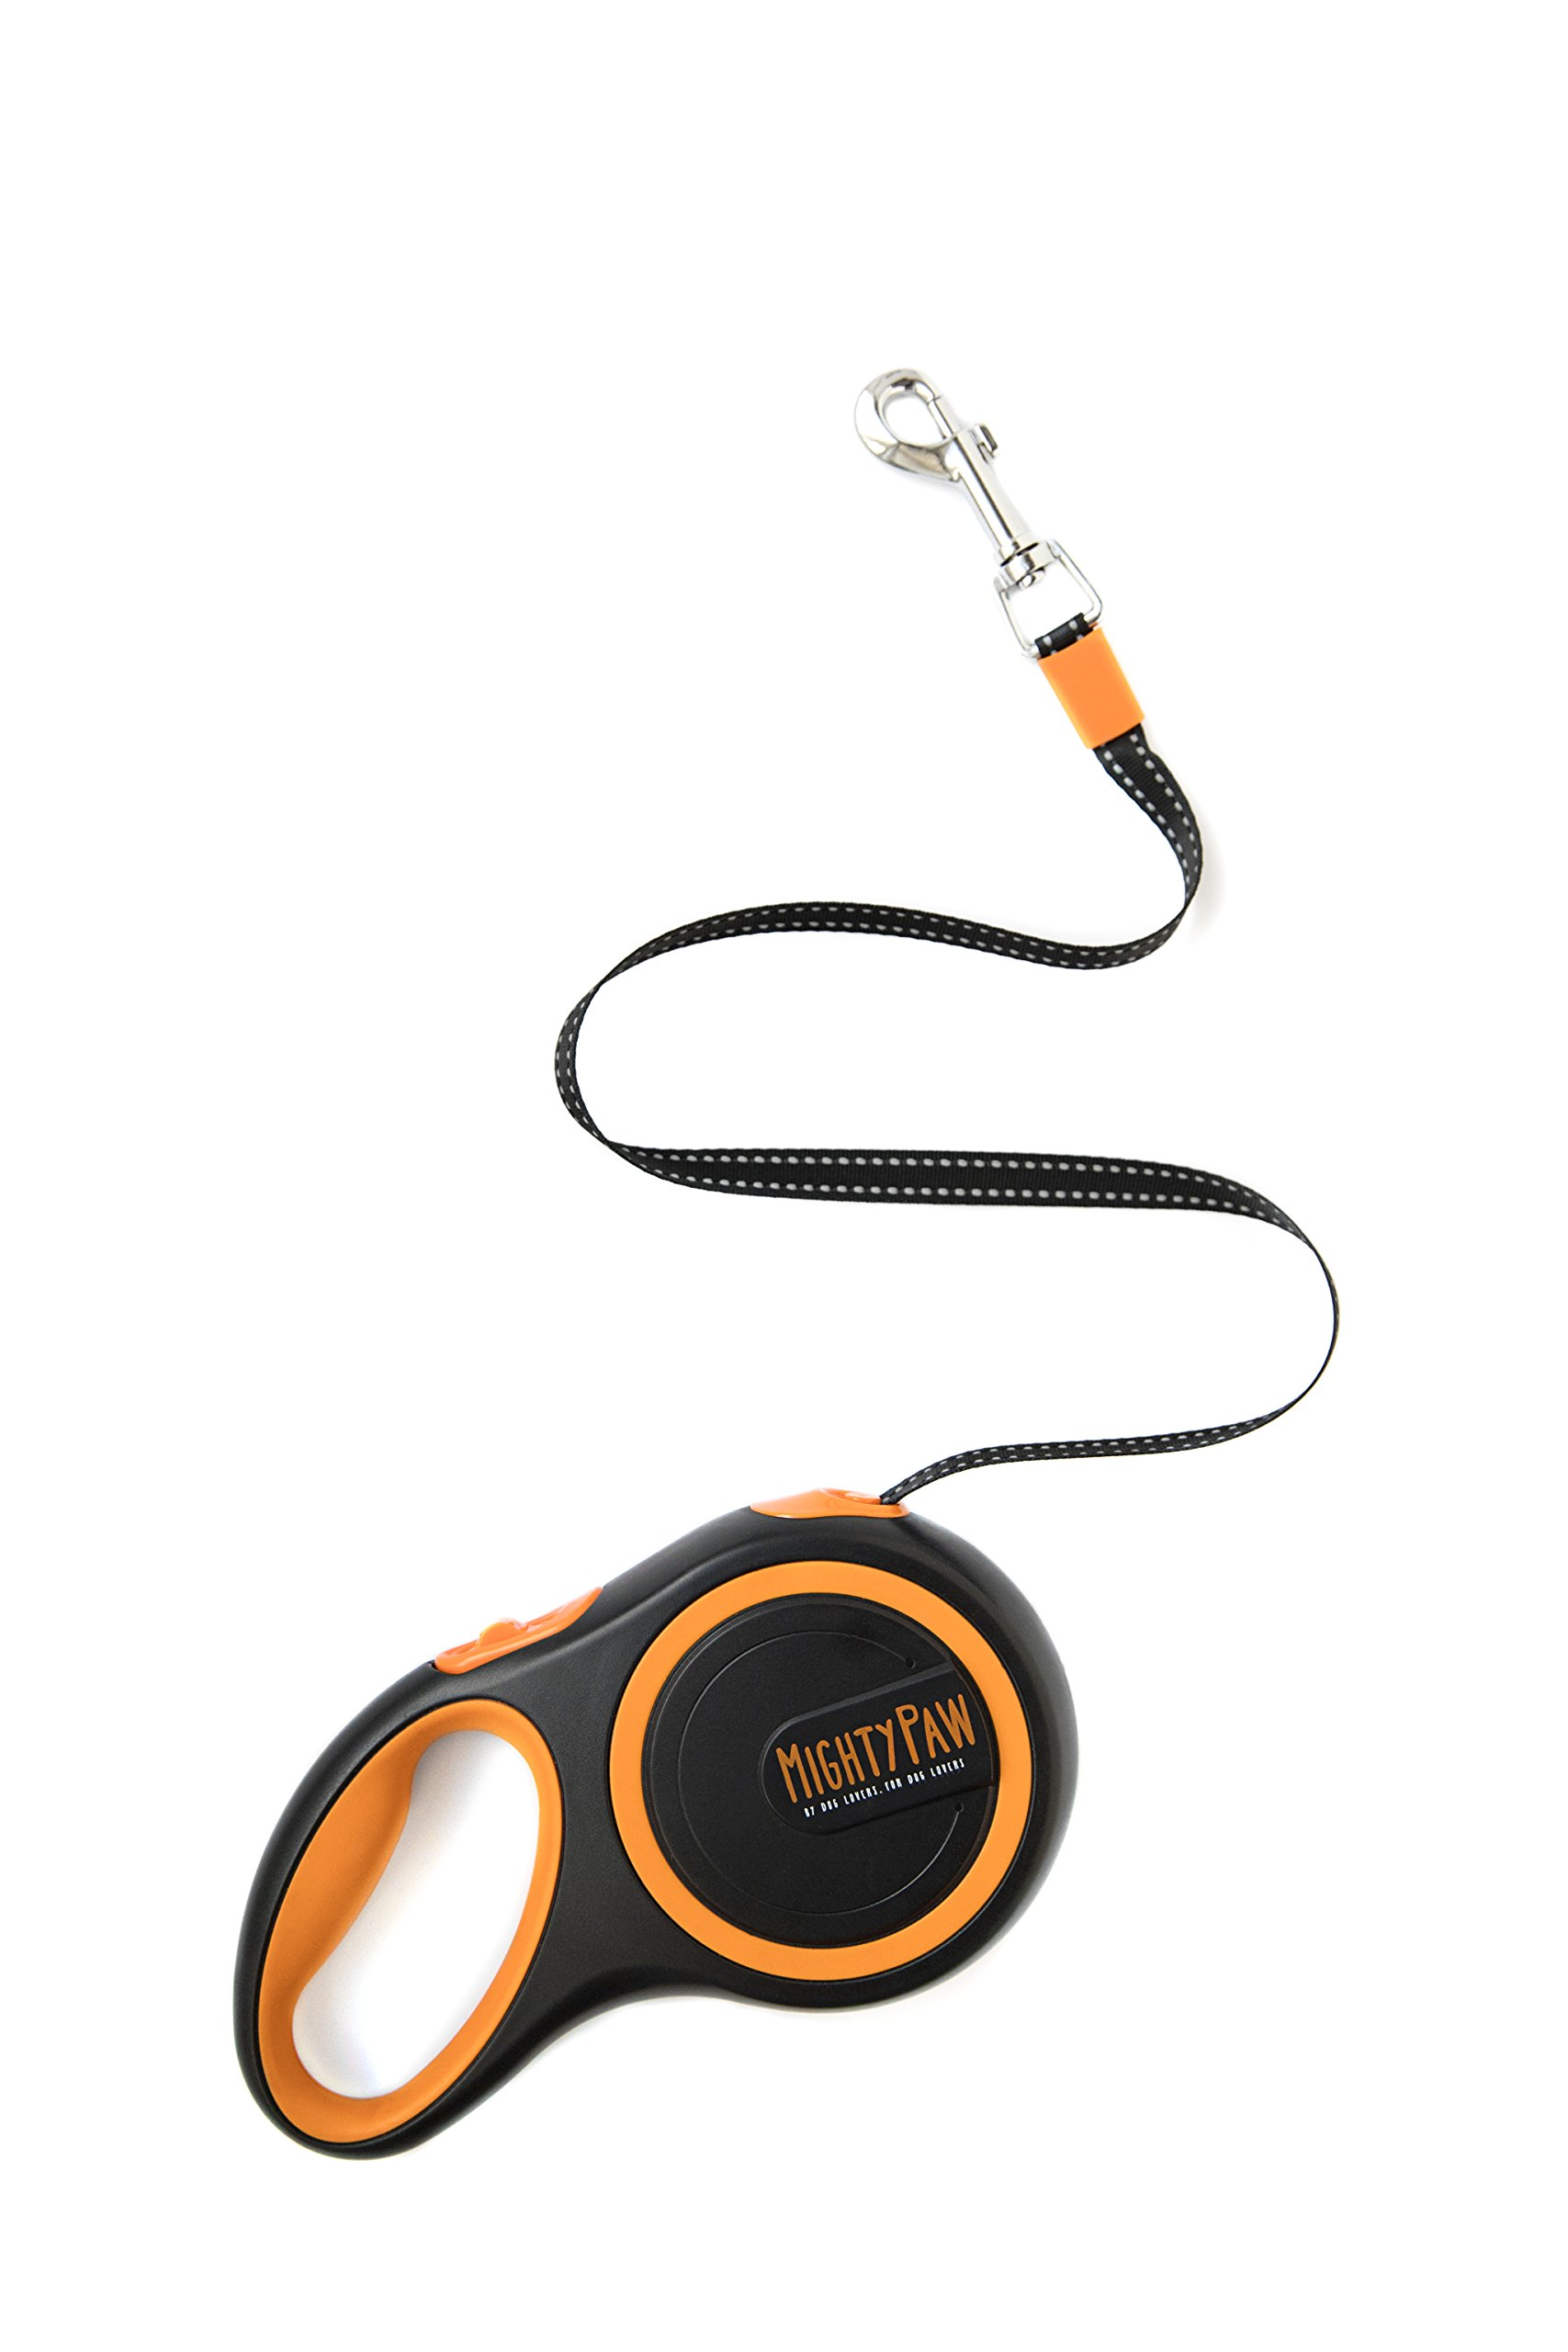 Mighty Paw Retractable Dog Leash, Extra-Durable 10x's Strength Stainless Steel Internal Coil, Reflective Stitching, 1-Touch Lock, No-Slip Grip (Standard, Black) by Mighty Paw (Image #1)